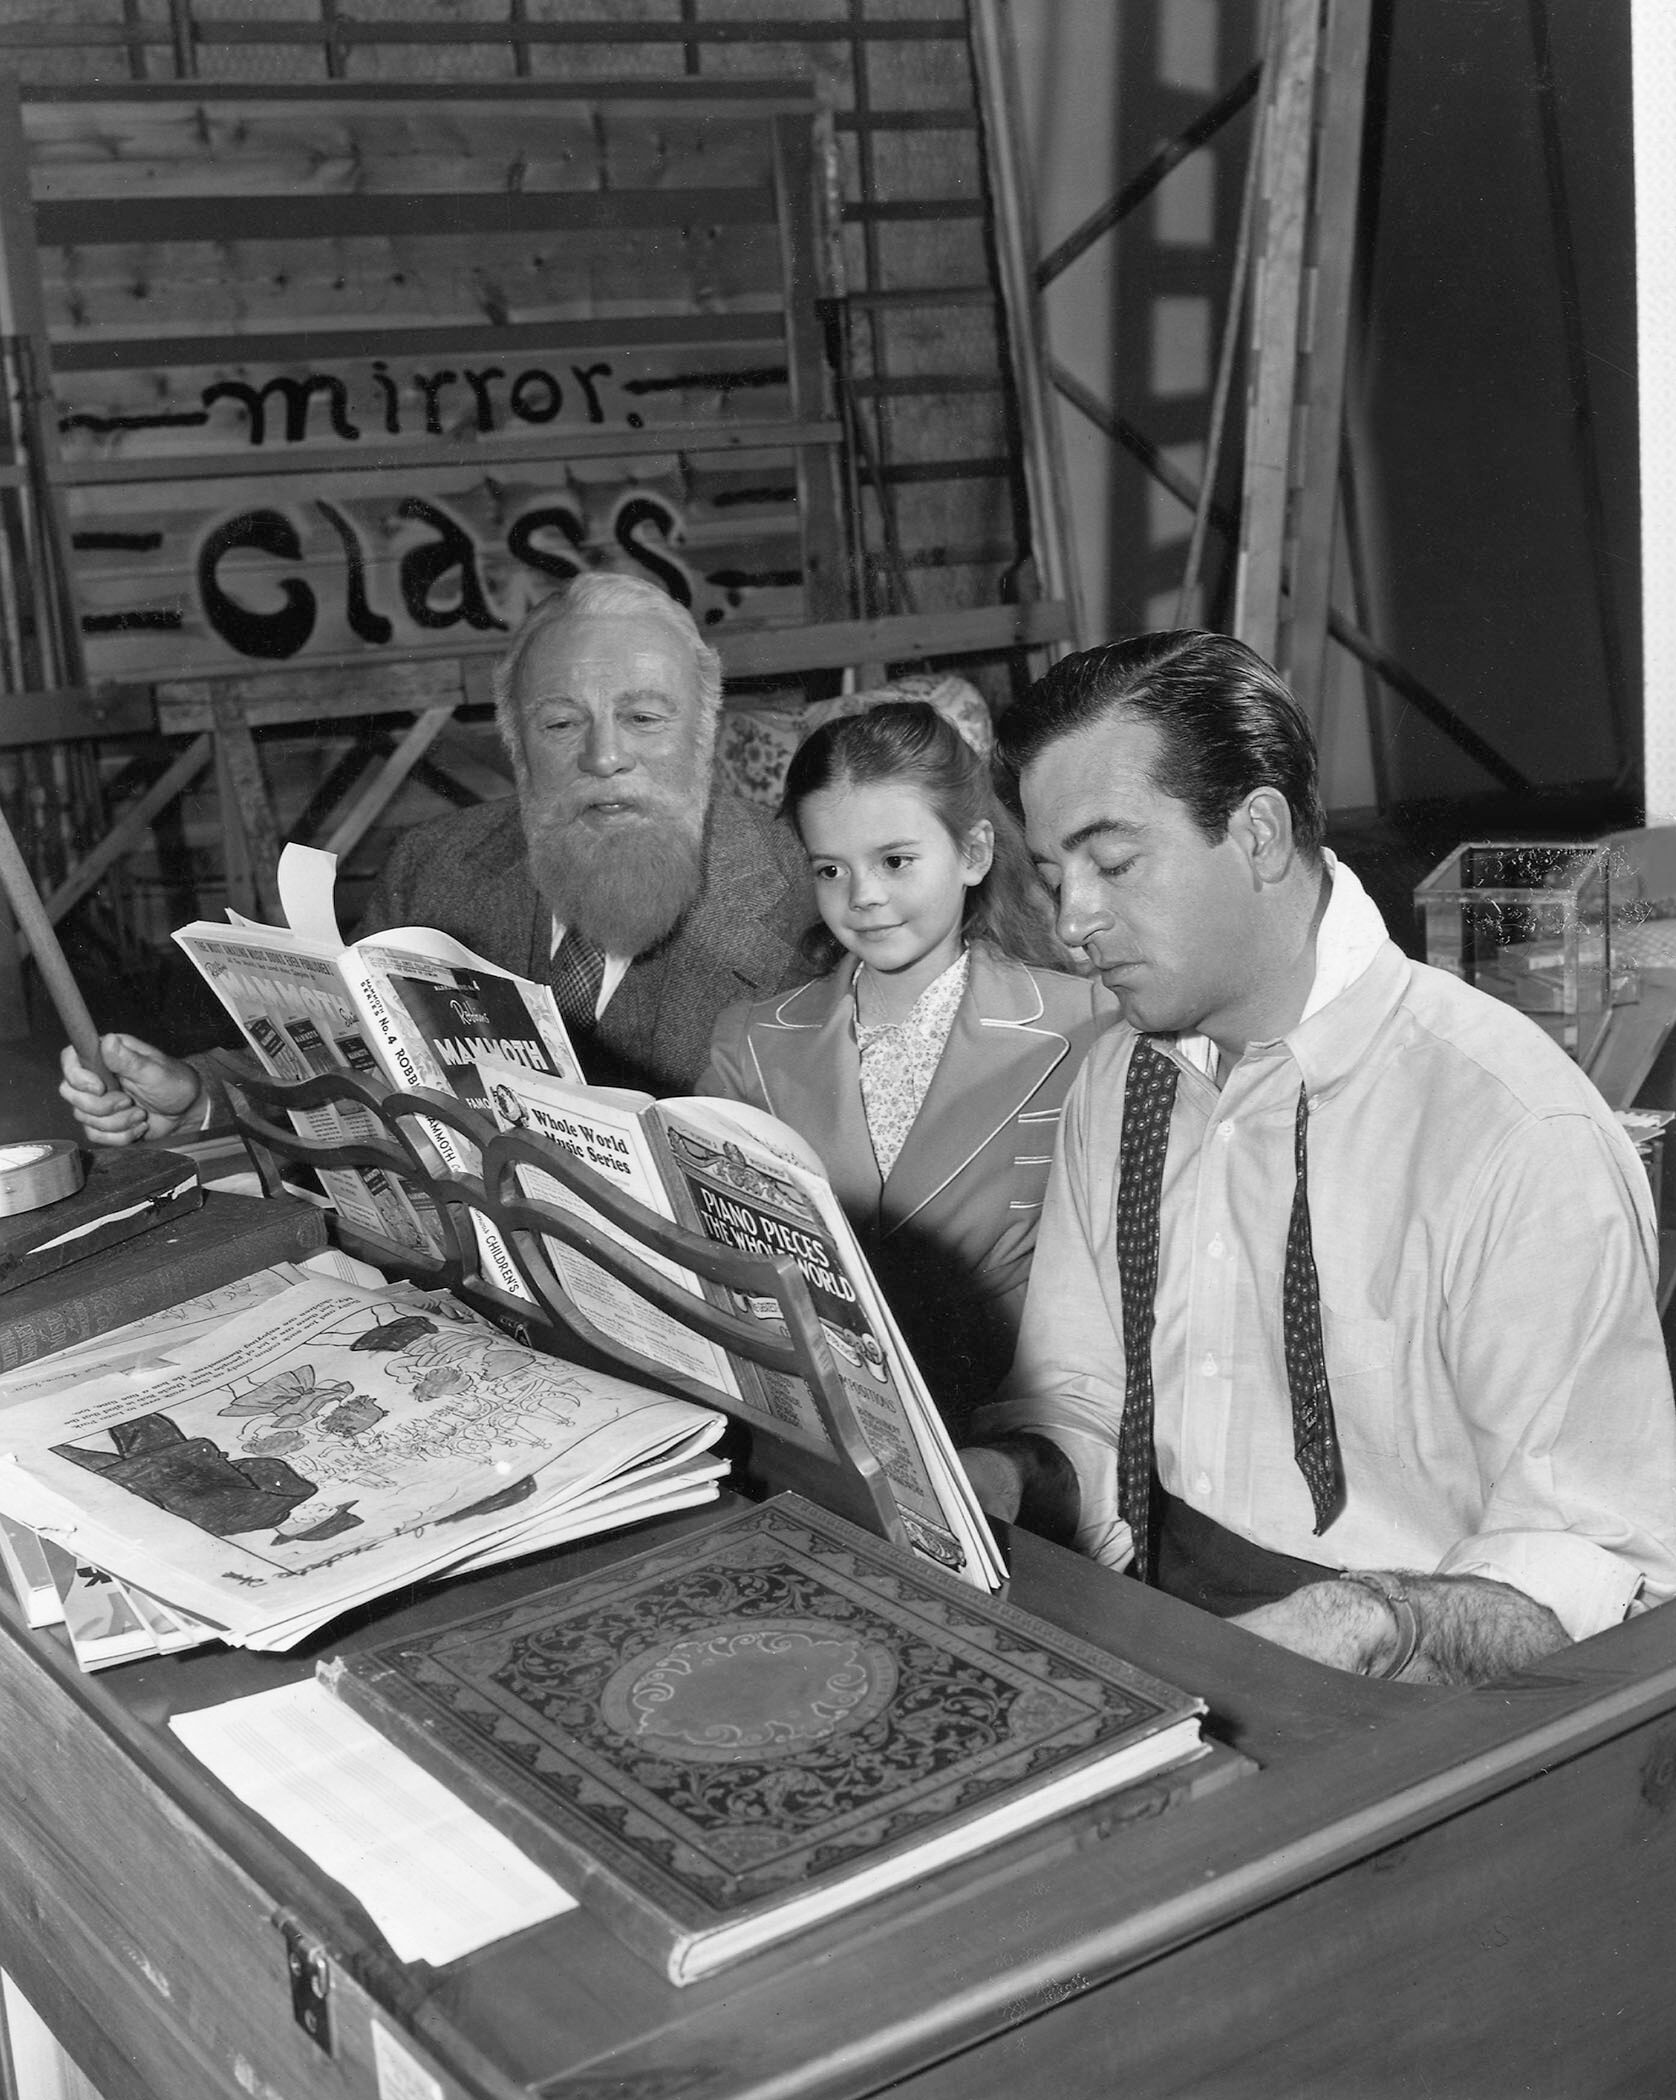 Edmund Gwenn, Natalie Wood, and John Payne